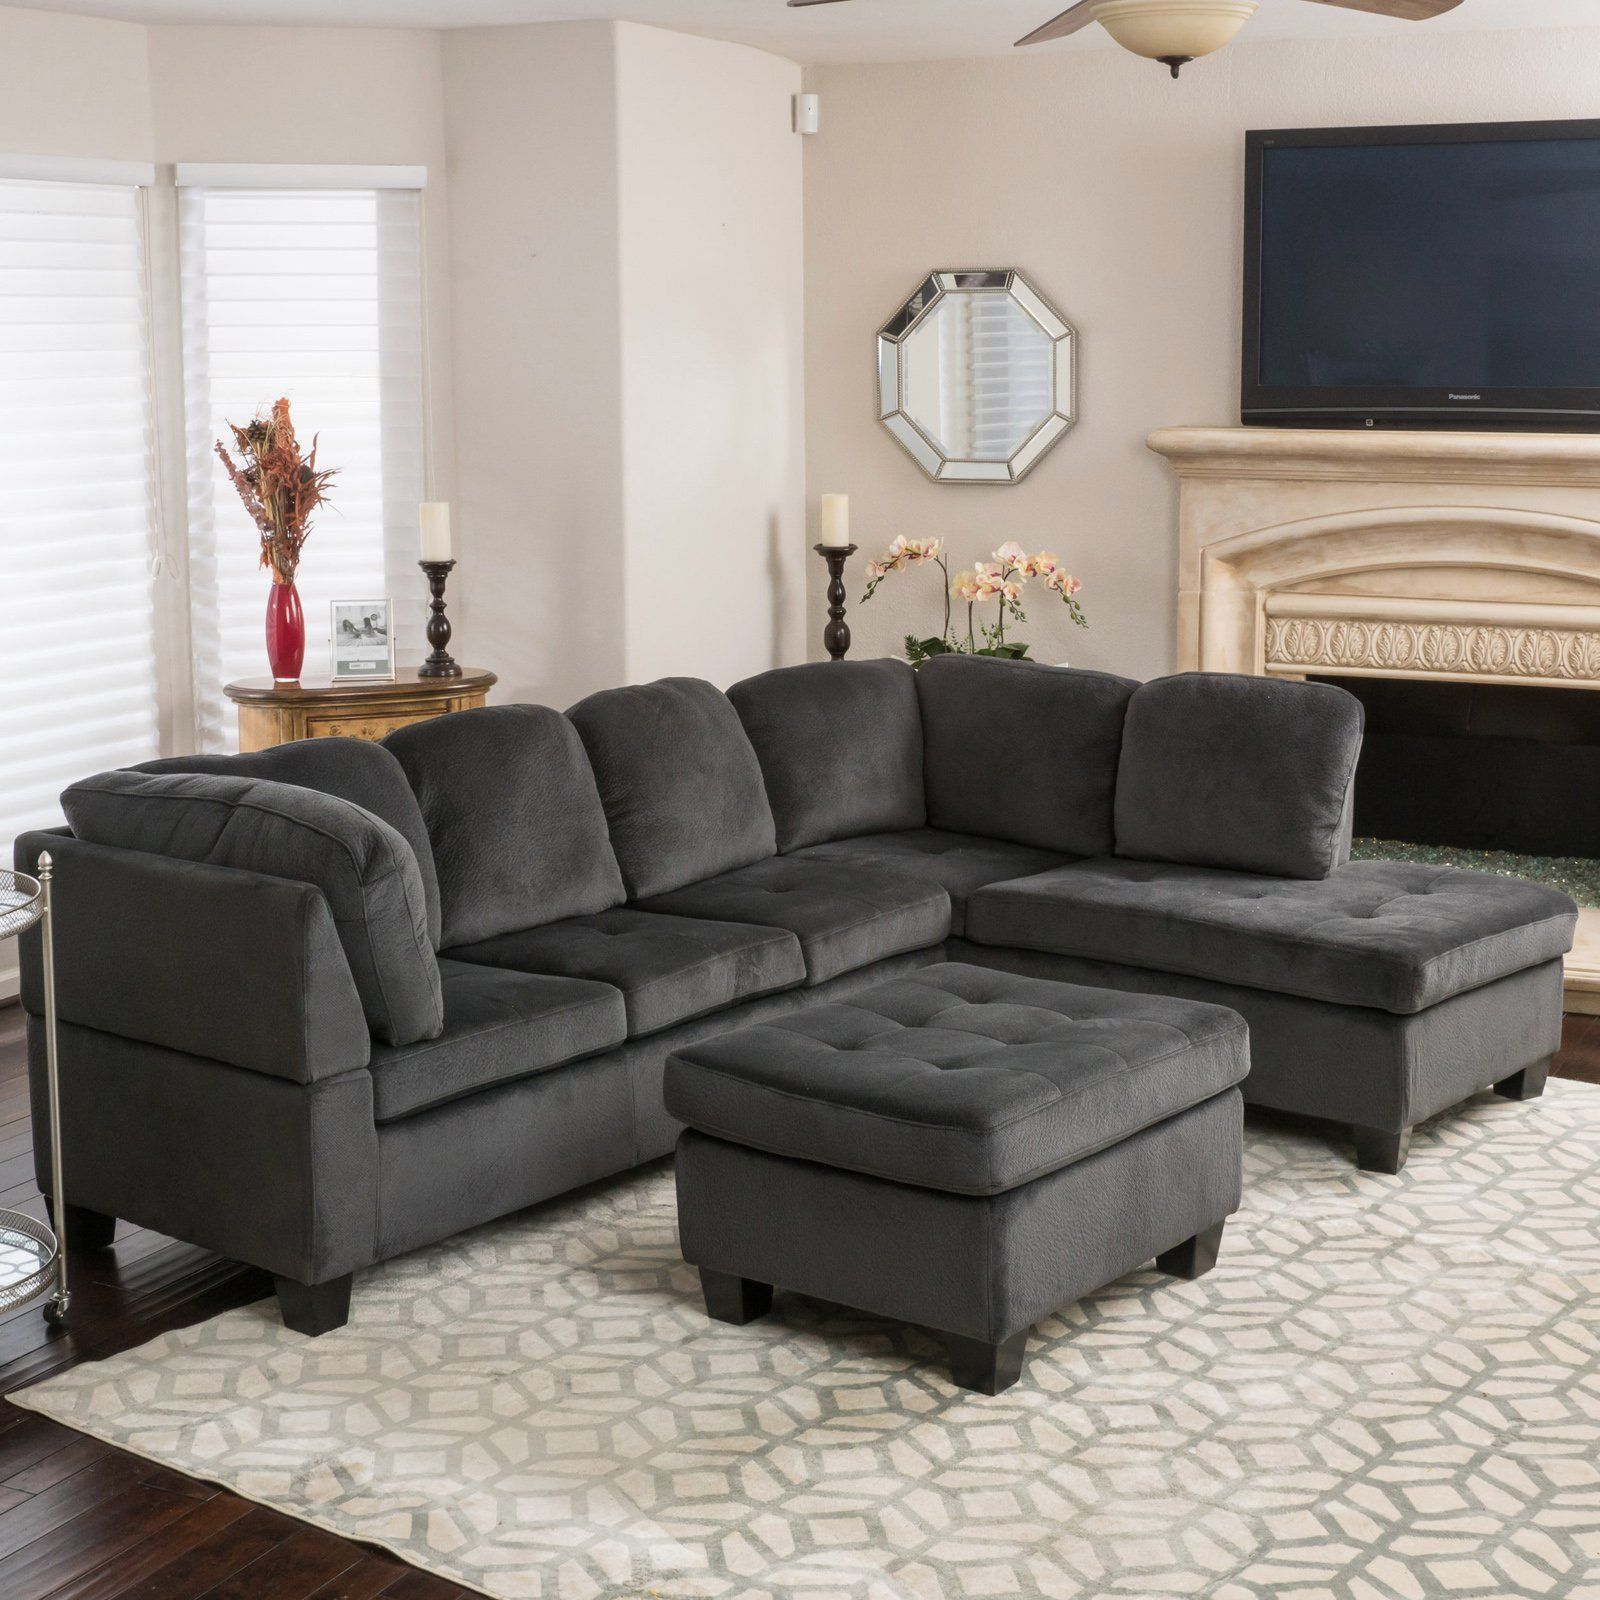 Evan 3 Piece Sectional Sofa in 2019 | Products | 3 piece sectional ...